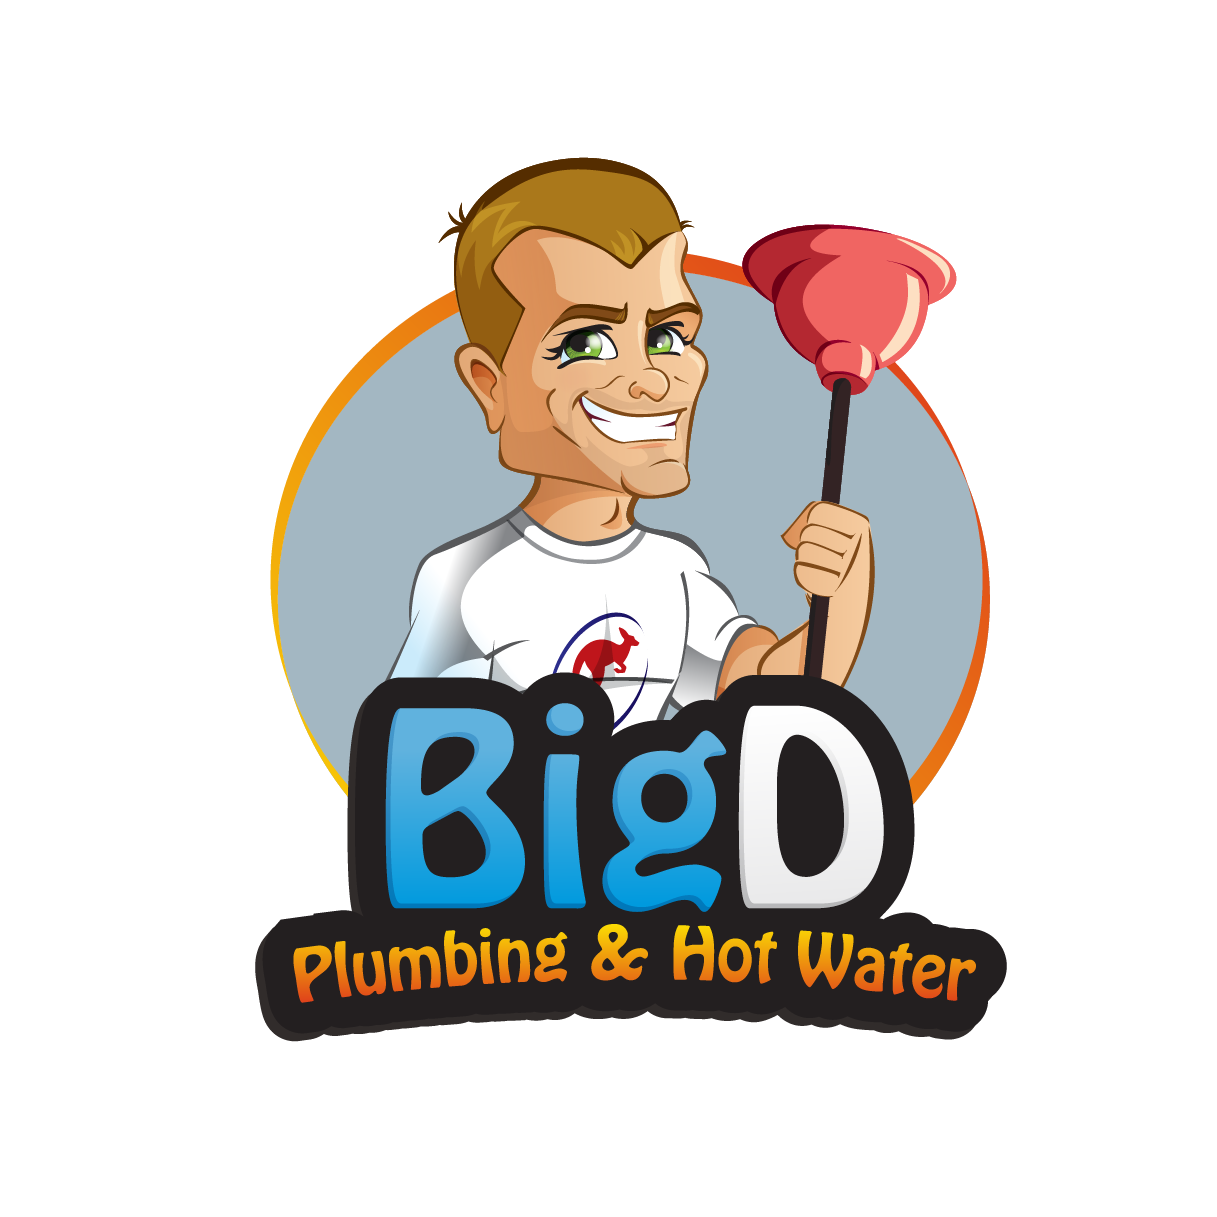 IMG:https://www.squamishplumbing.ca/wp-content/uploads/2017/11/Final-Big-D-Plumbing-07.png